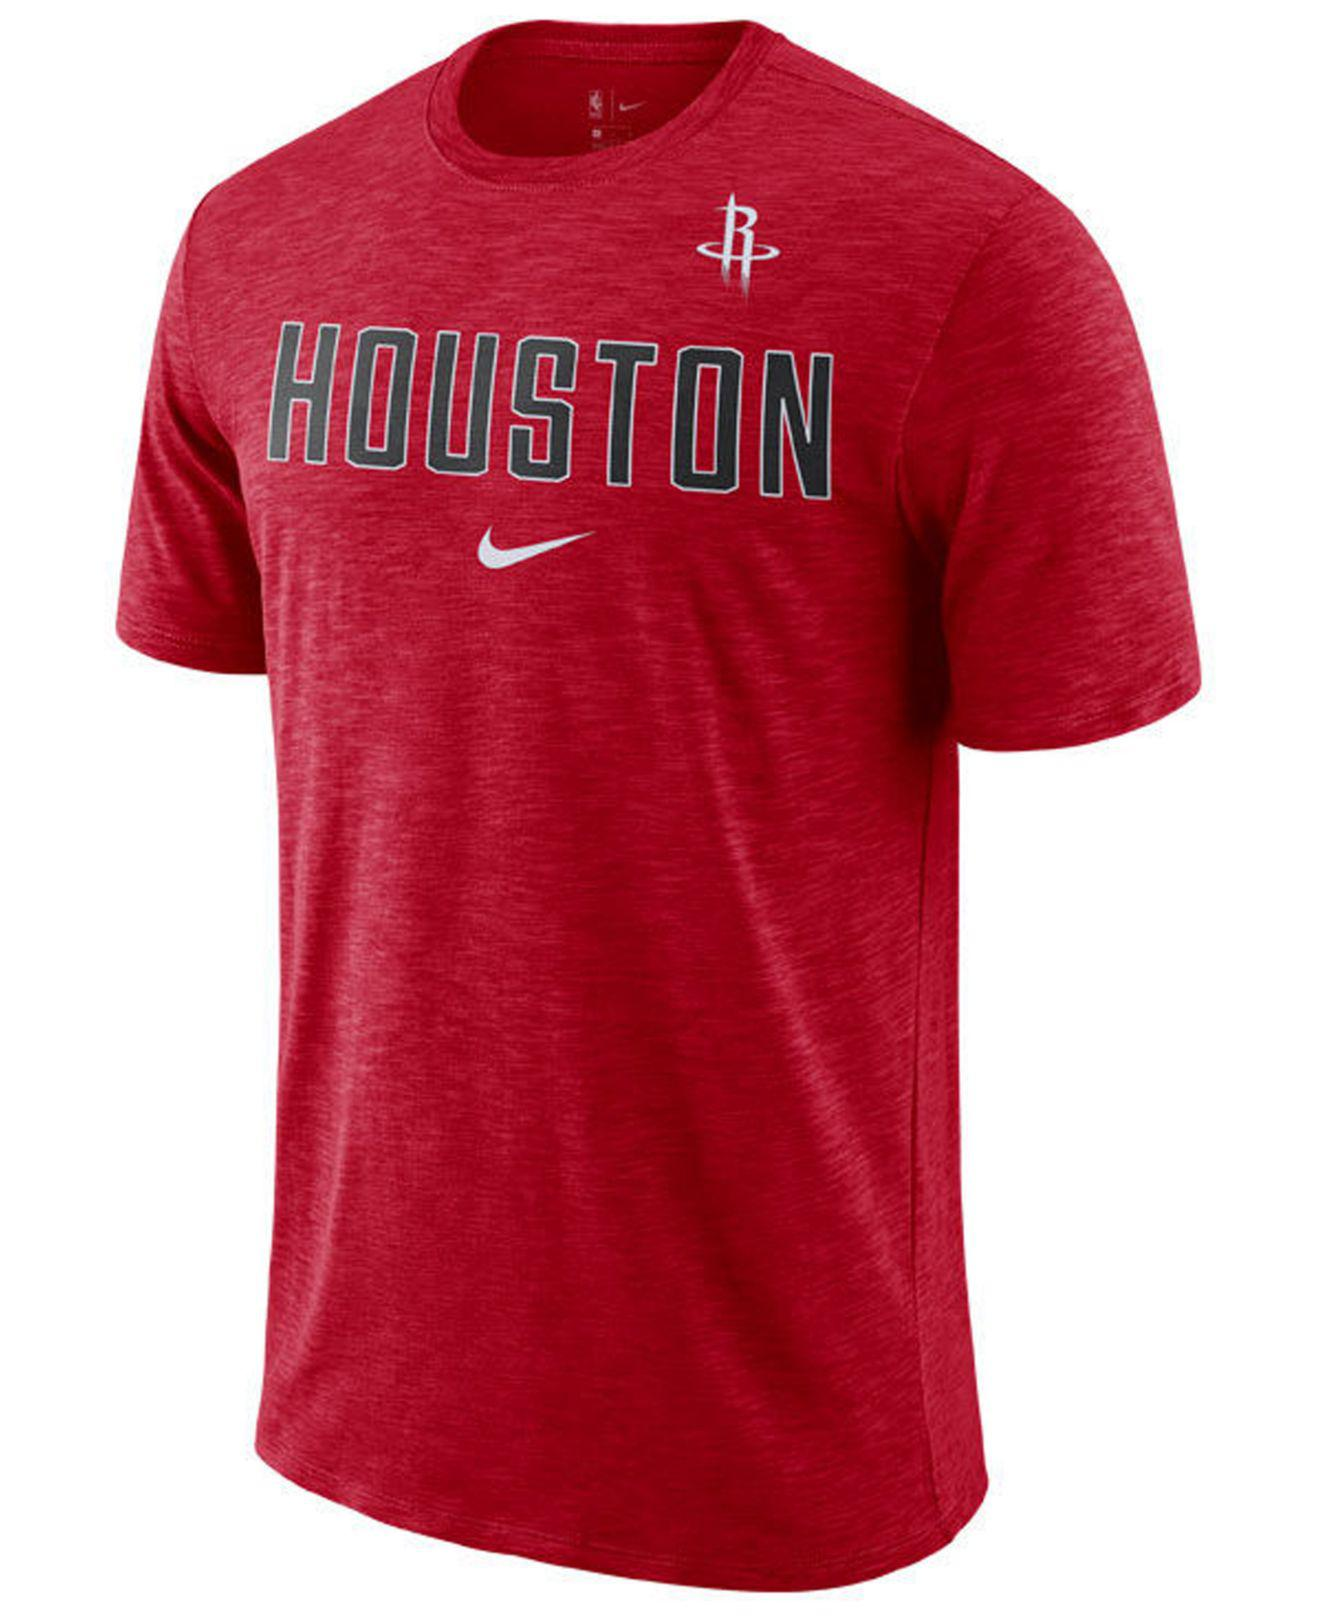 Lyst - Nike Houston Rockets Essential Facility T-shirt in Red for Men 9f54f32ed